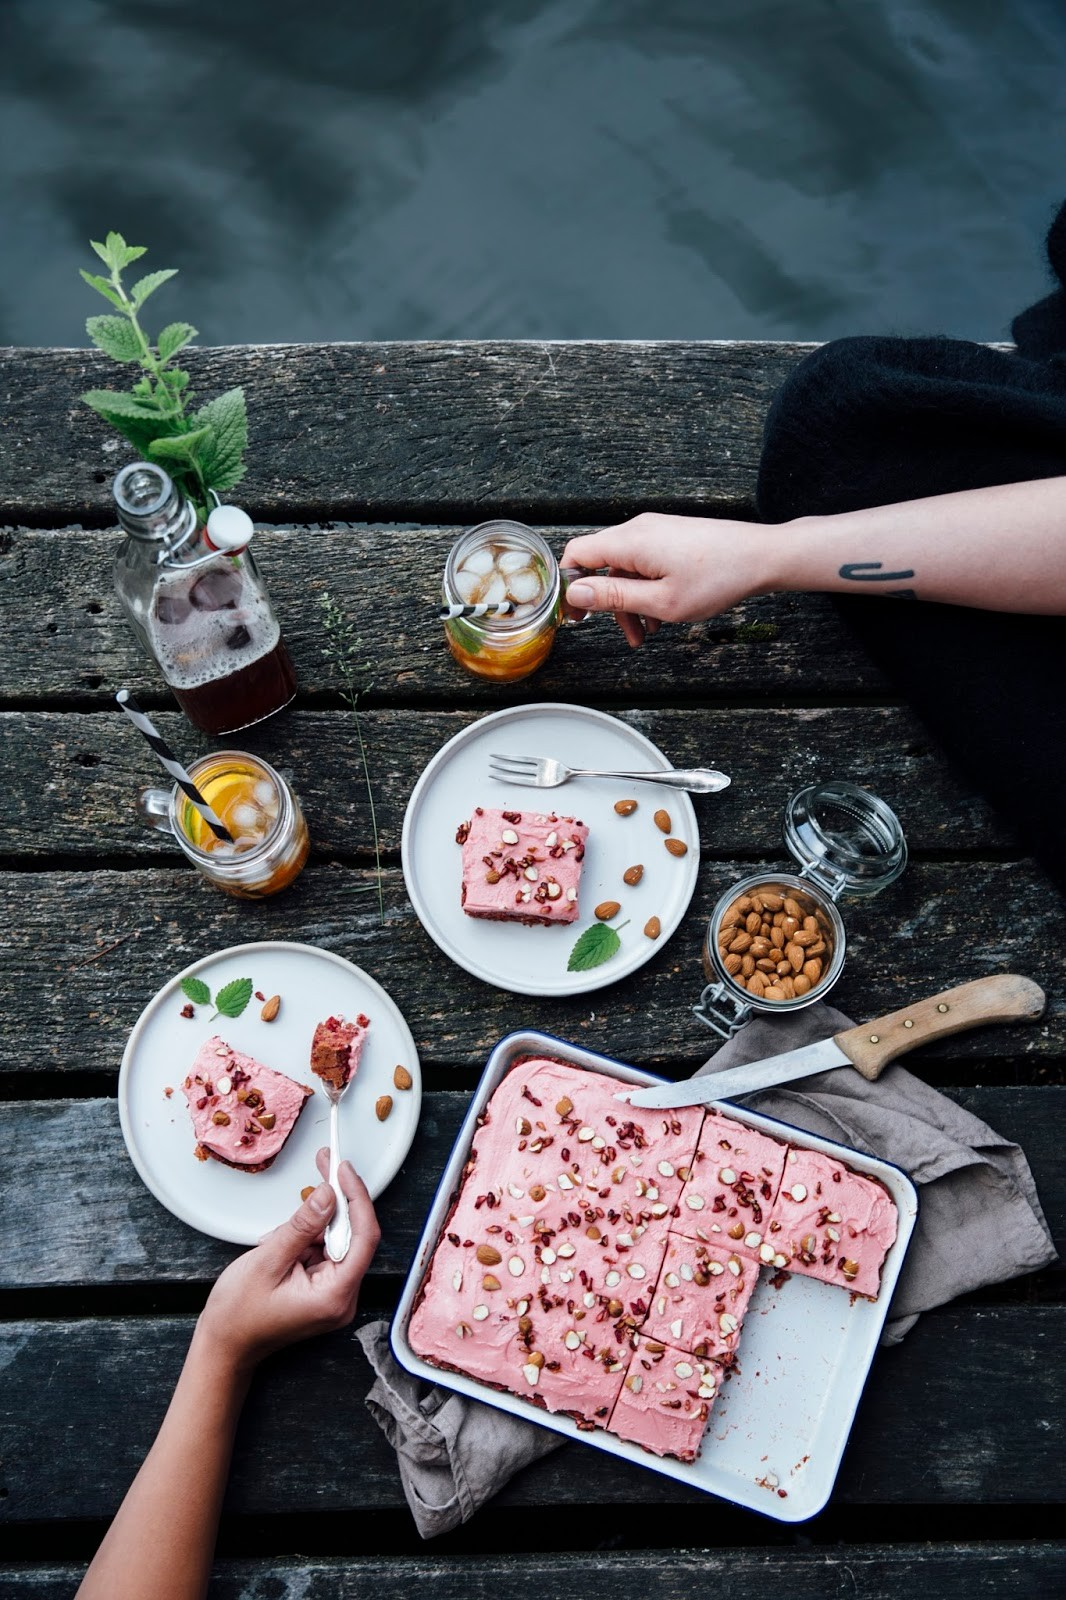 Gluten-free Beetroot Cake with Date Sugar & a Trip to the Lake